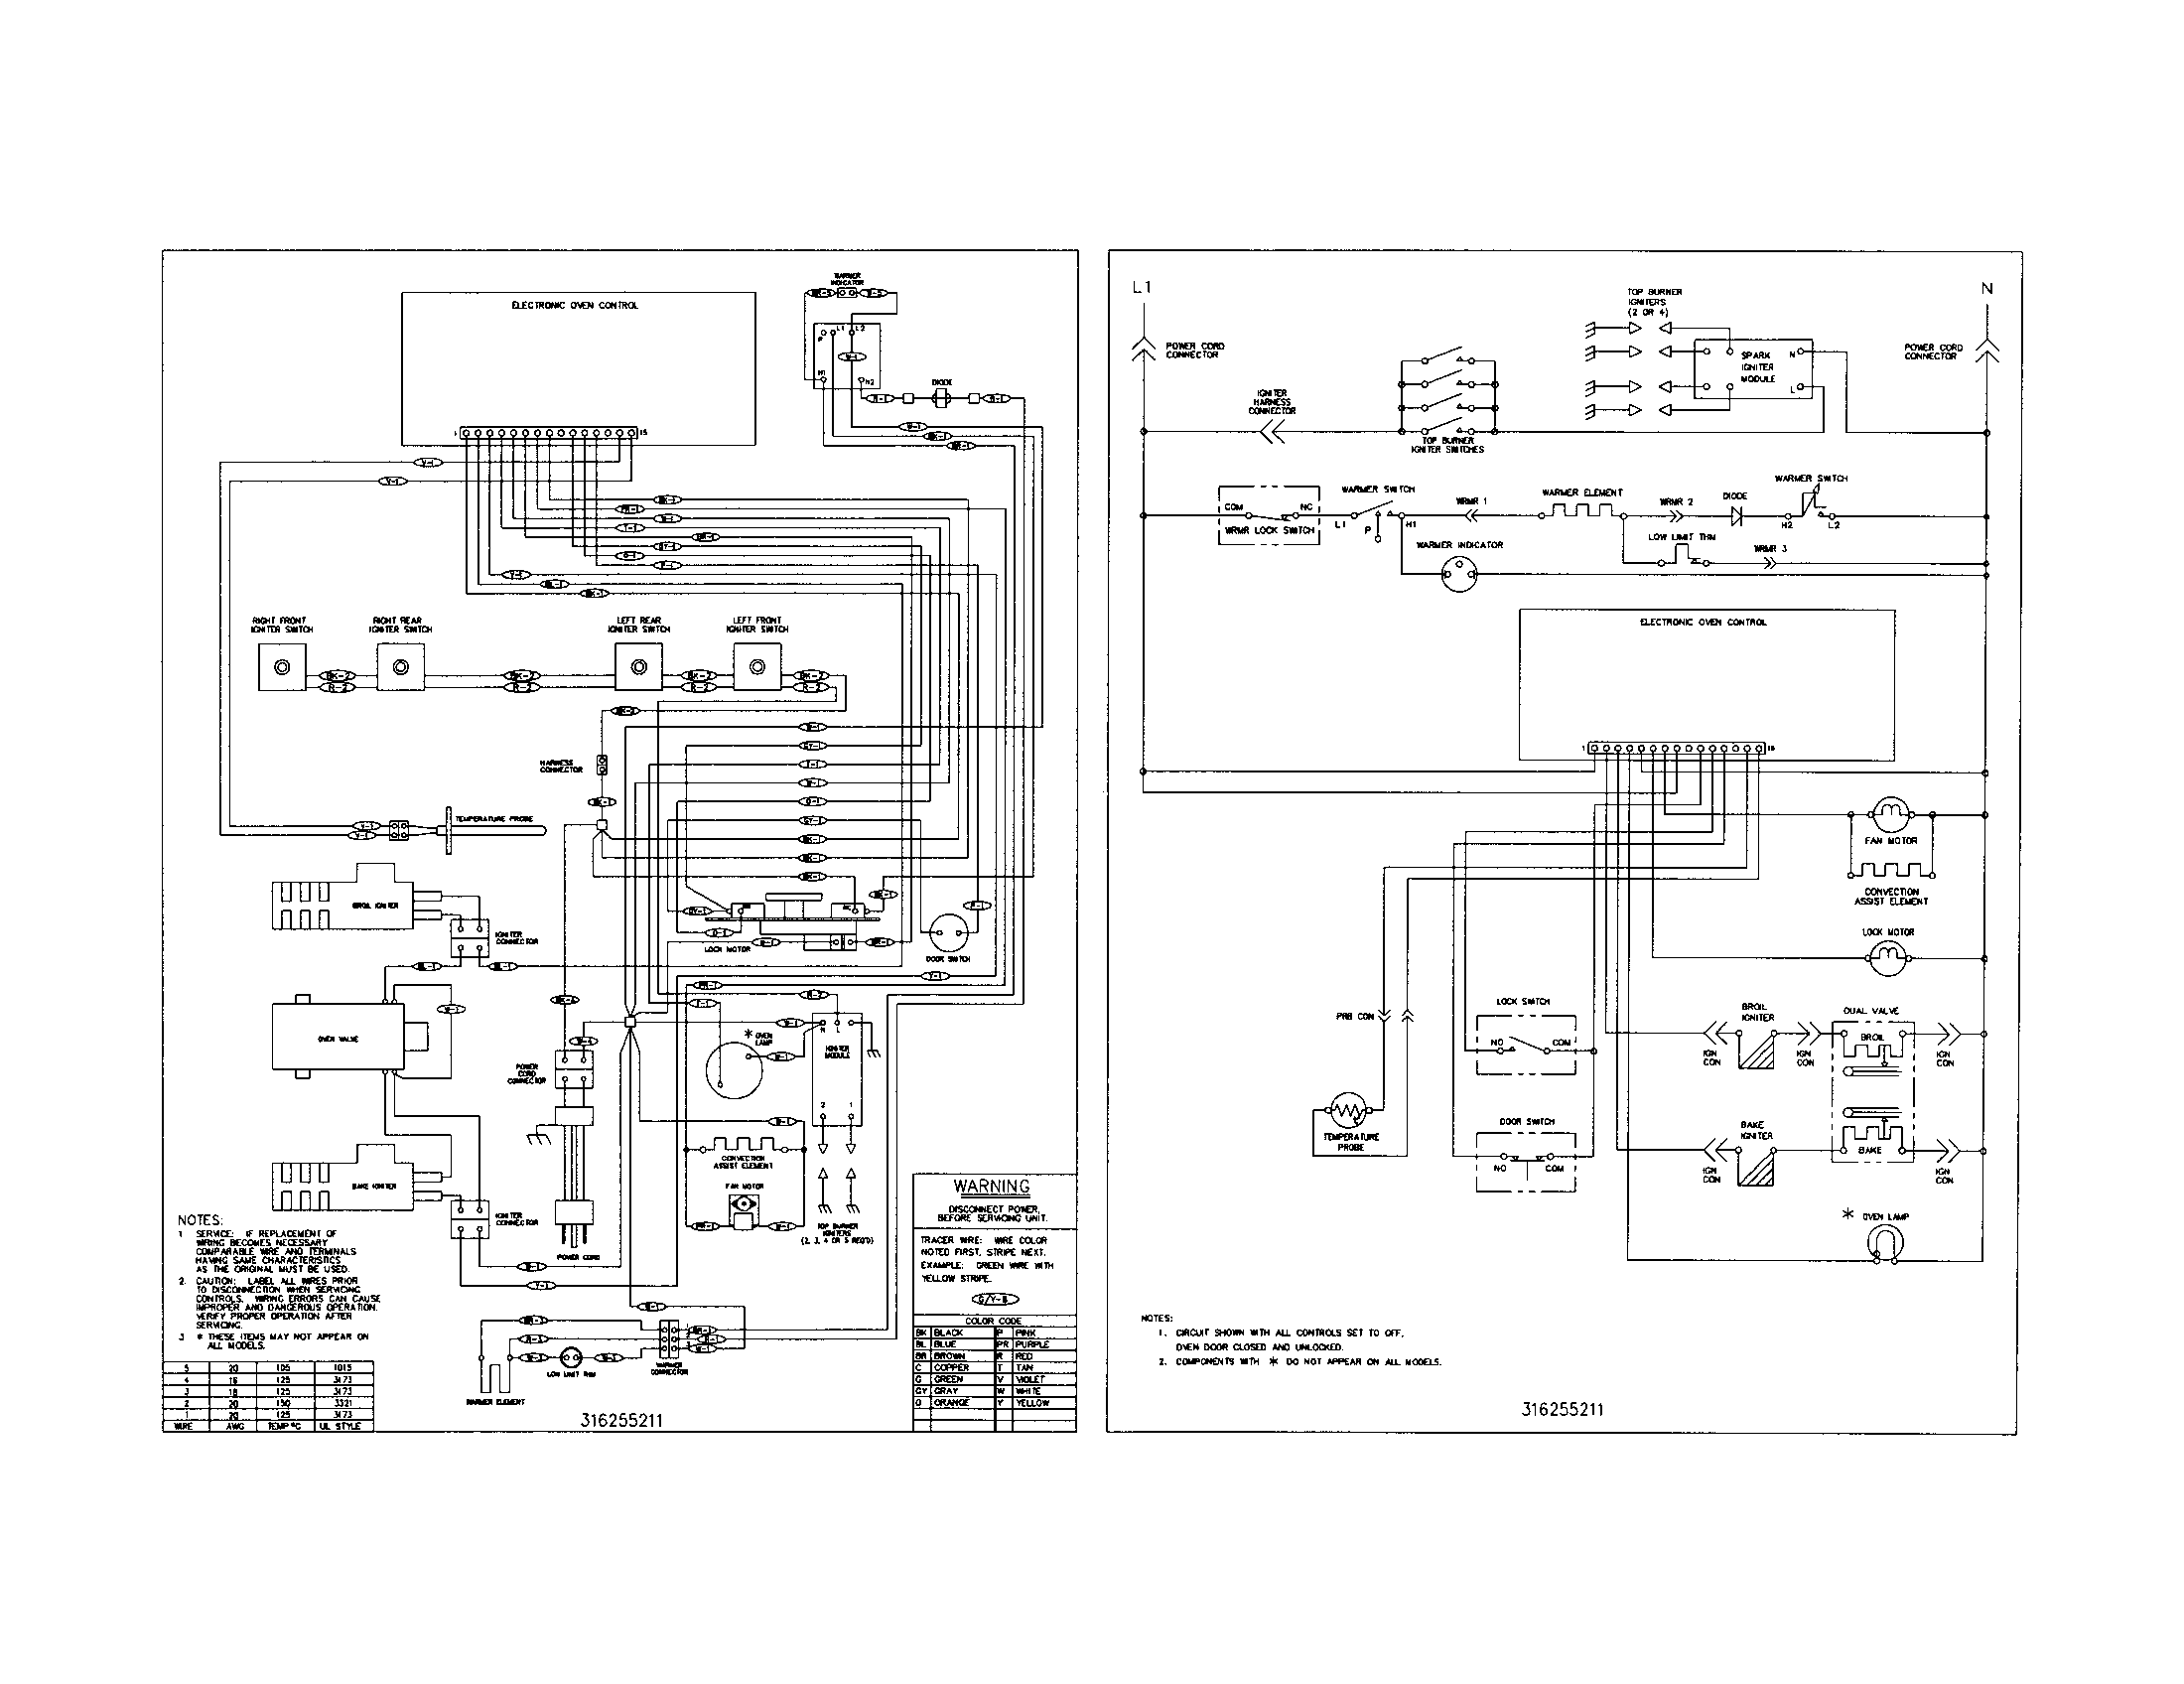 Whirlpool Oven Wiring Diagram 29 Images Roper Dryer Red4440vq1 Schematic Partsresize6652c513ssl1 Electrolux